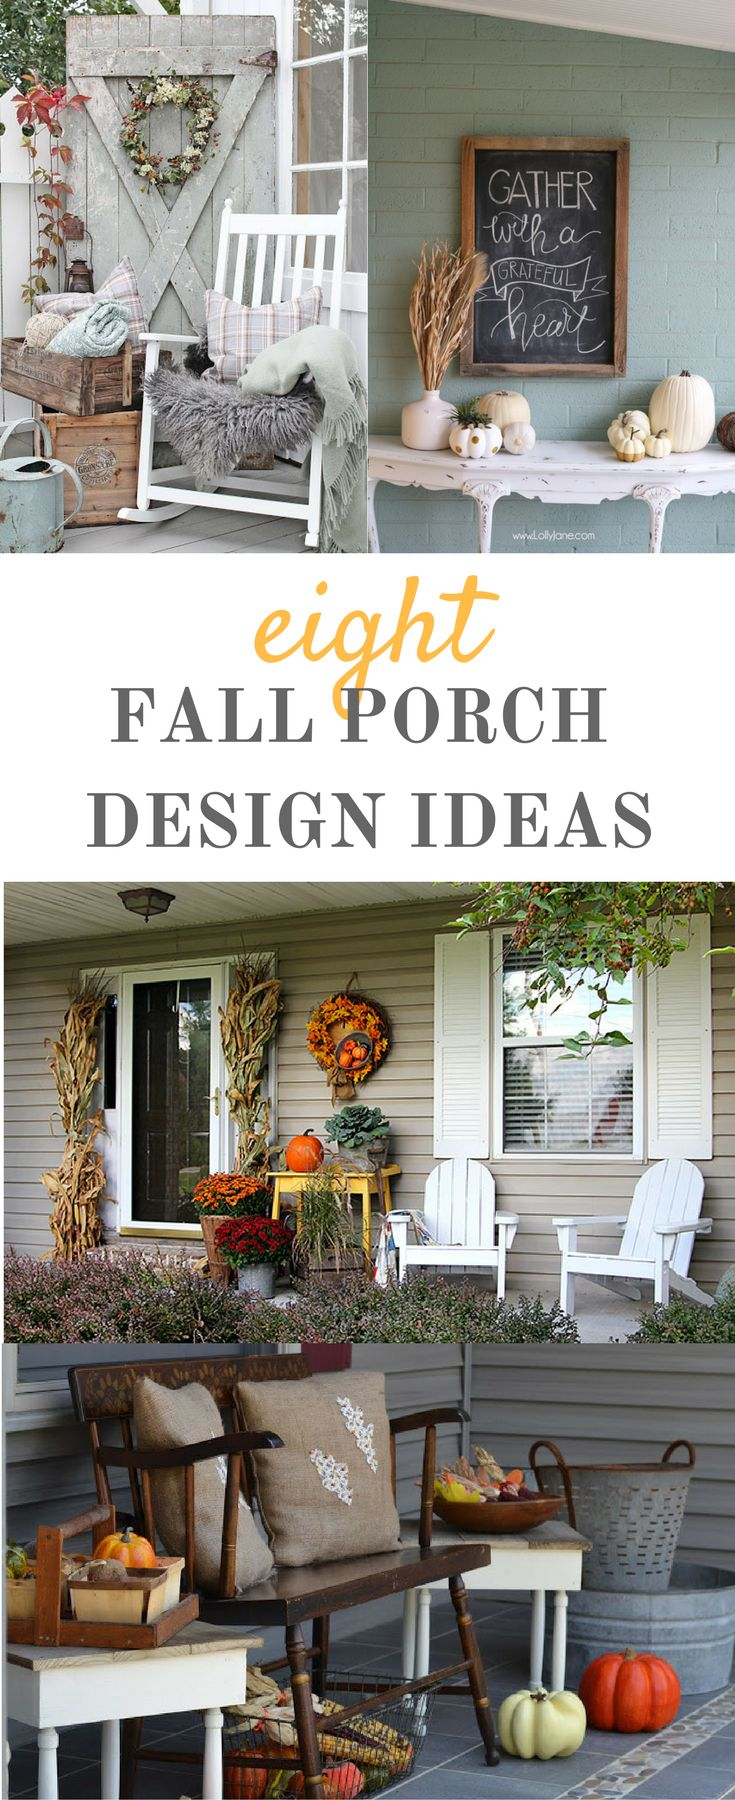 Fall porch designis our topic for this Creativity & Inspiration Tuesday. It's time to get your porches all set up with fall decor!  Eight fabulous designs to feed your creative juices.  | DIY | ideas | rustic | white pumpkins | wreaths | crates | chalkb